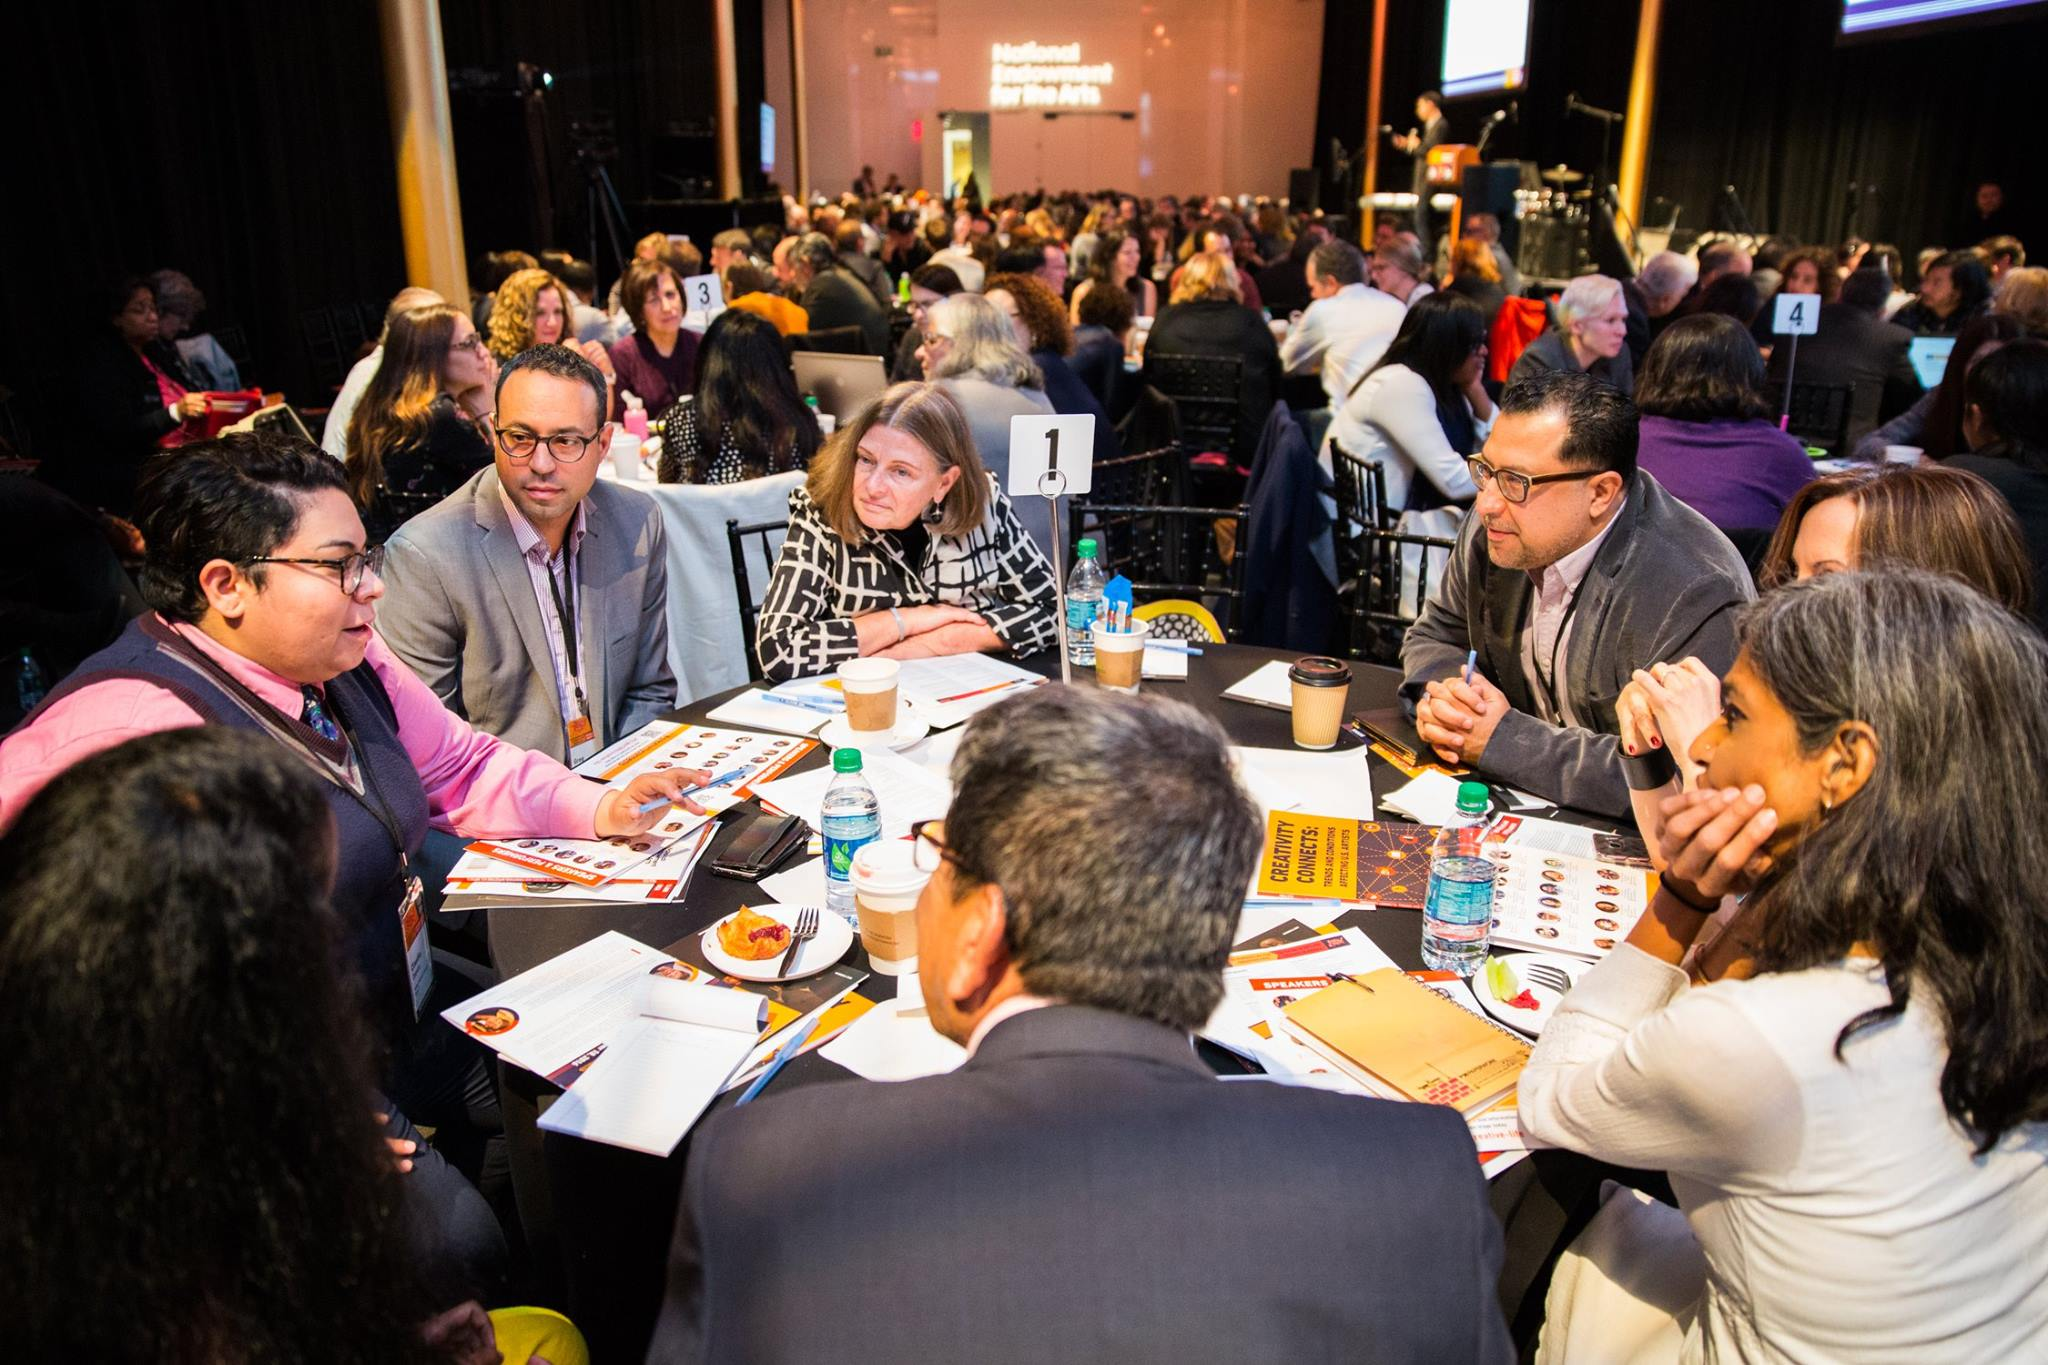 National Endowment for the Arts. In Pursuit of the Creative Life: The Future of Arts + Creativity. Convening participants take part in conversation following panel discussions. Photo courtesy of Yassine El Mansouri.